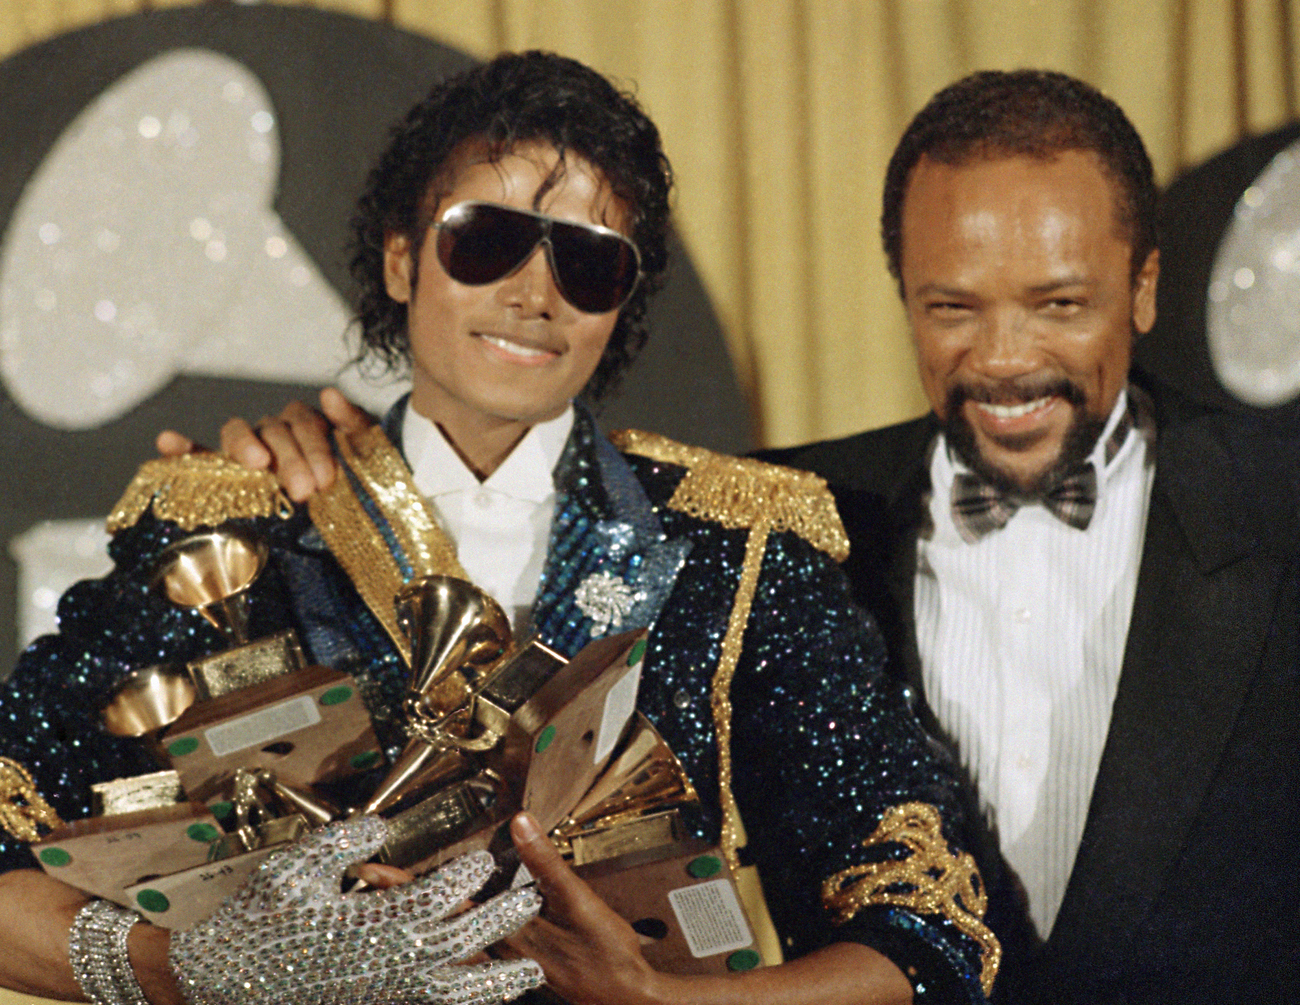 Michael Jackson et Quincy Jones en 1984 lors de la remise d'un Grammy Awards.